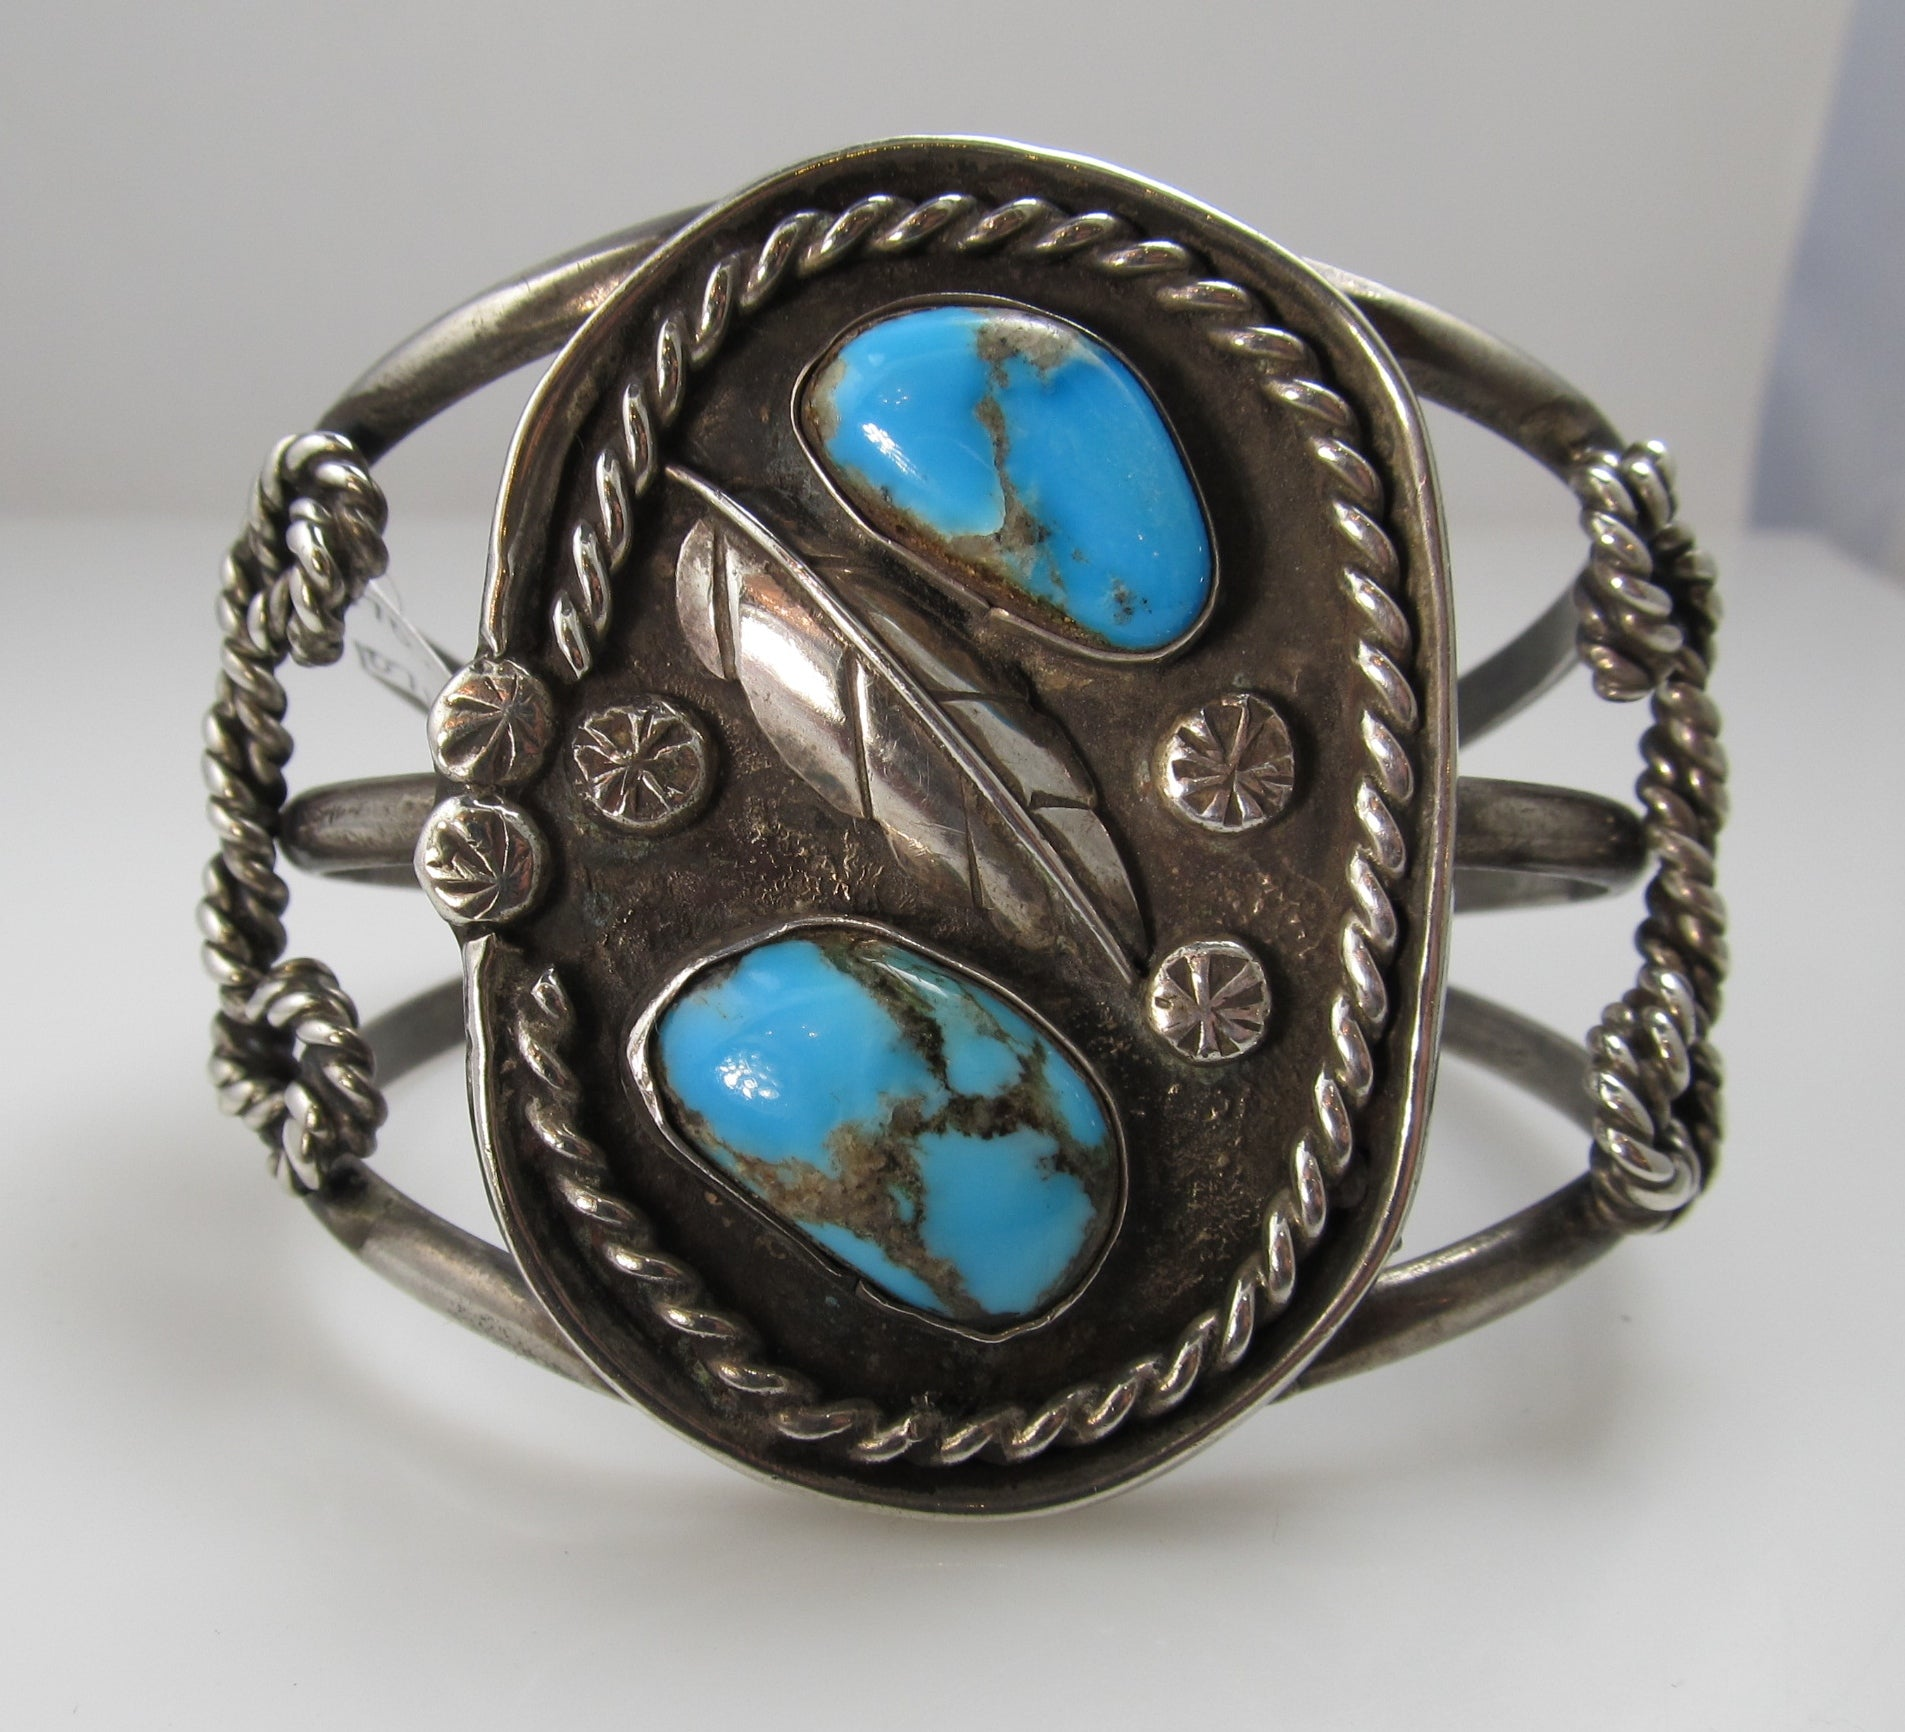 Vintage Sterling Silver Navajo Cuff Bracelet With Turquoise